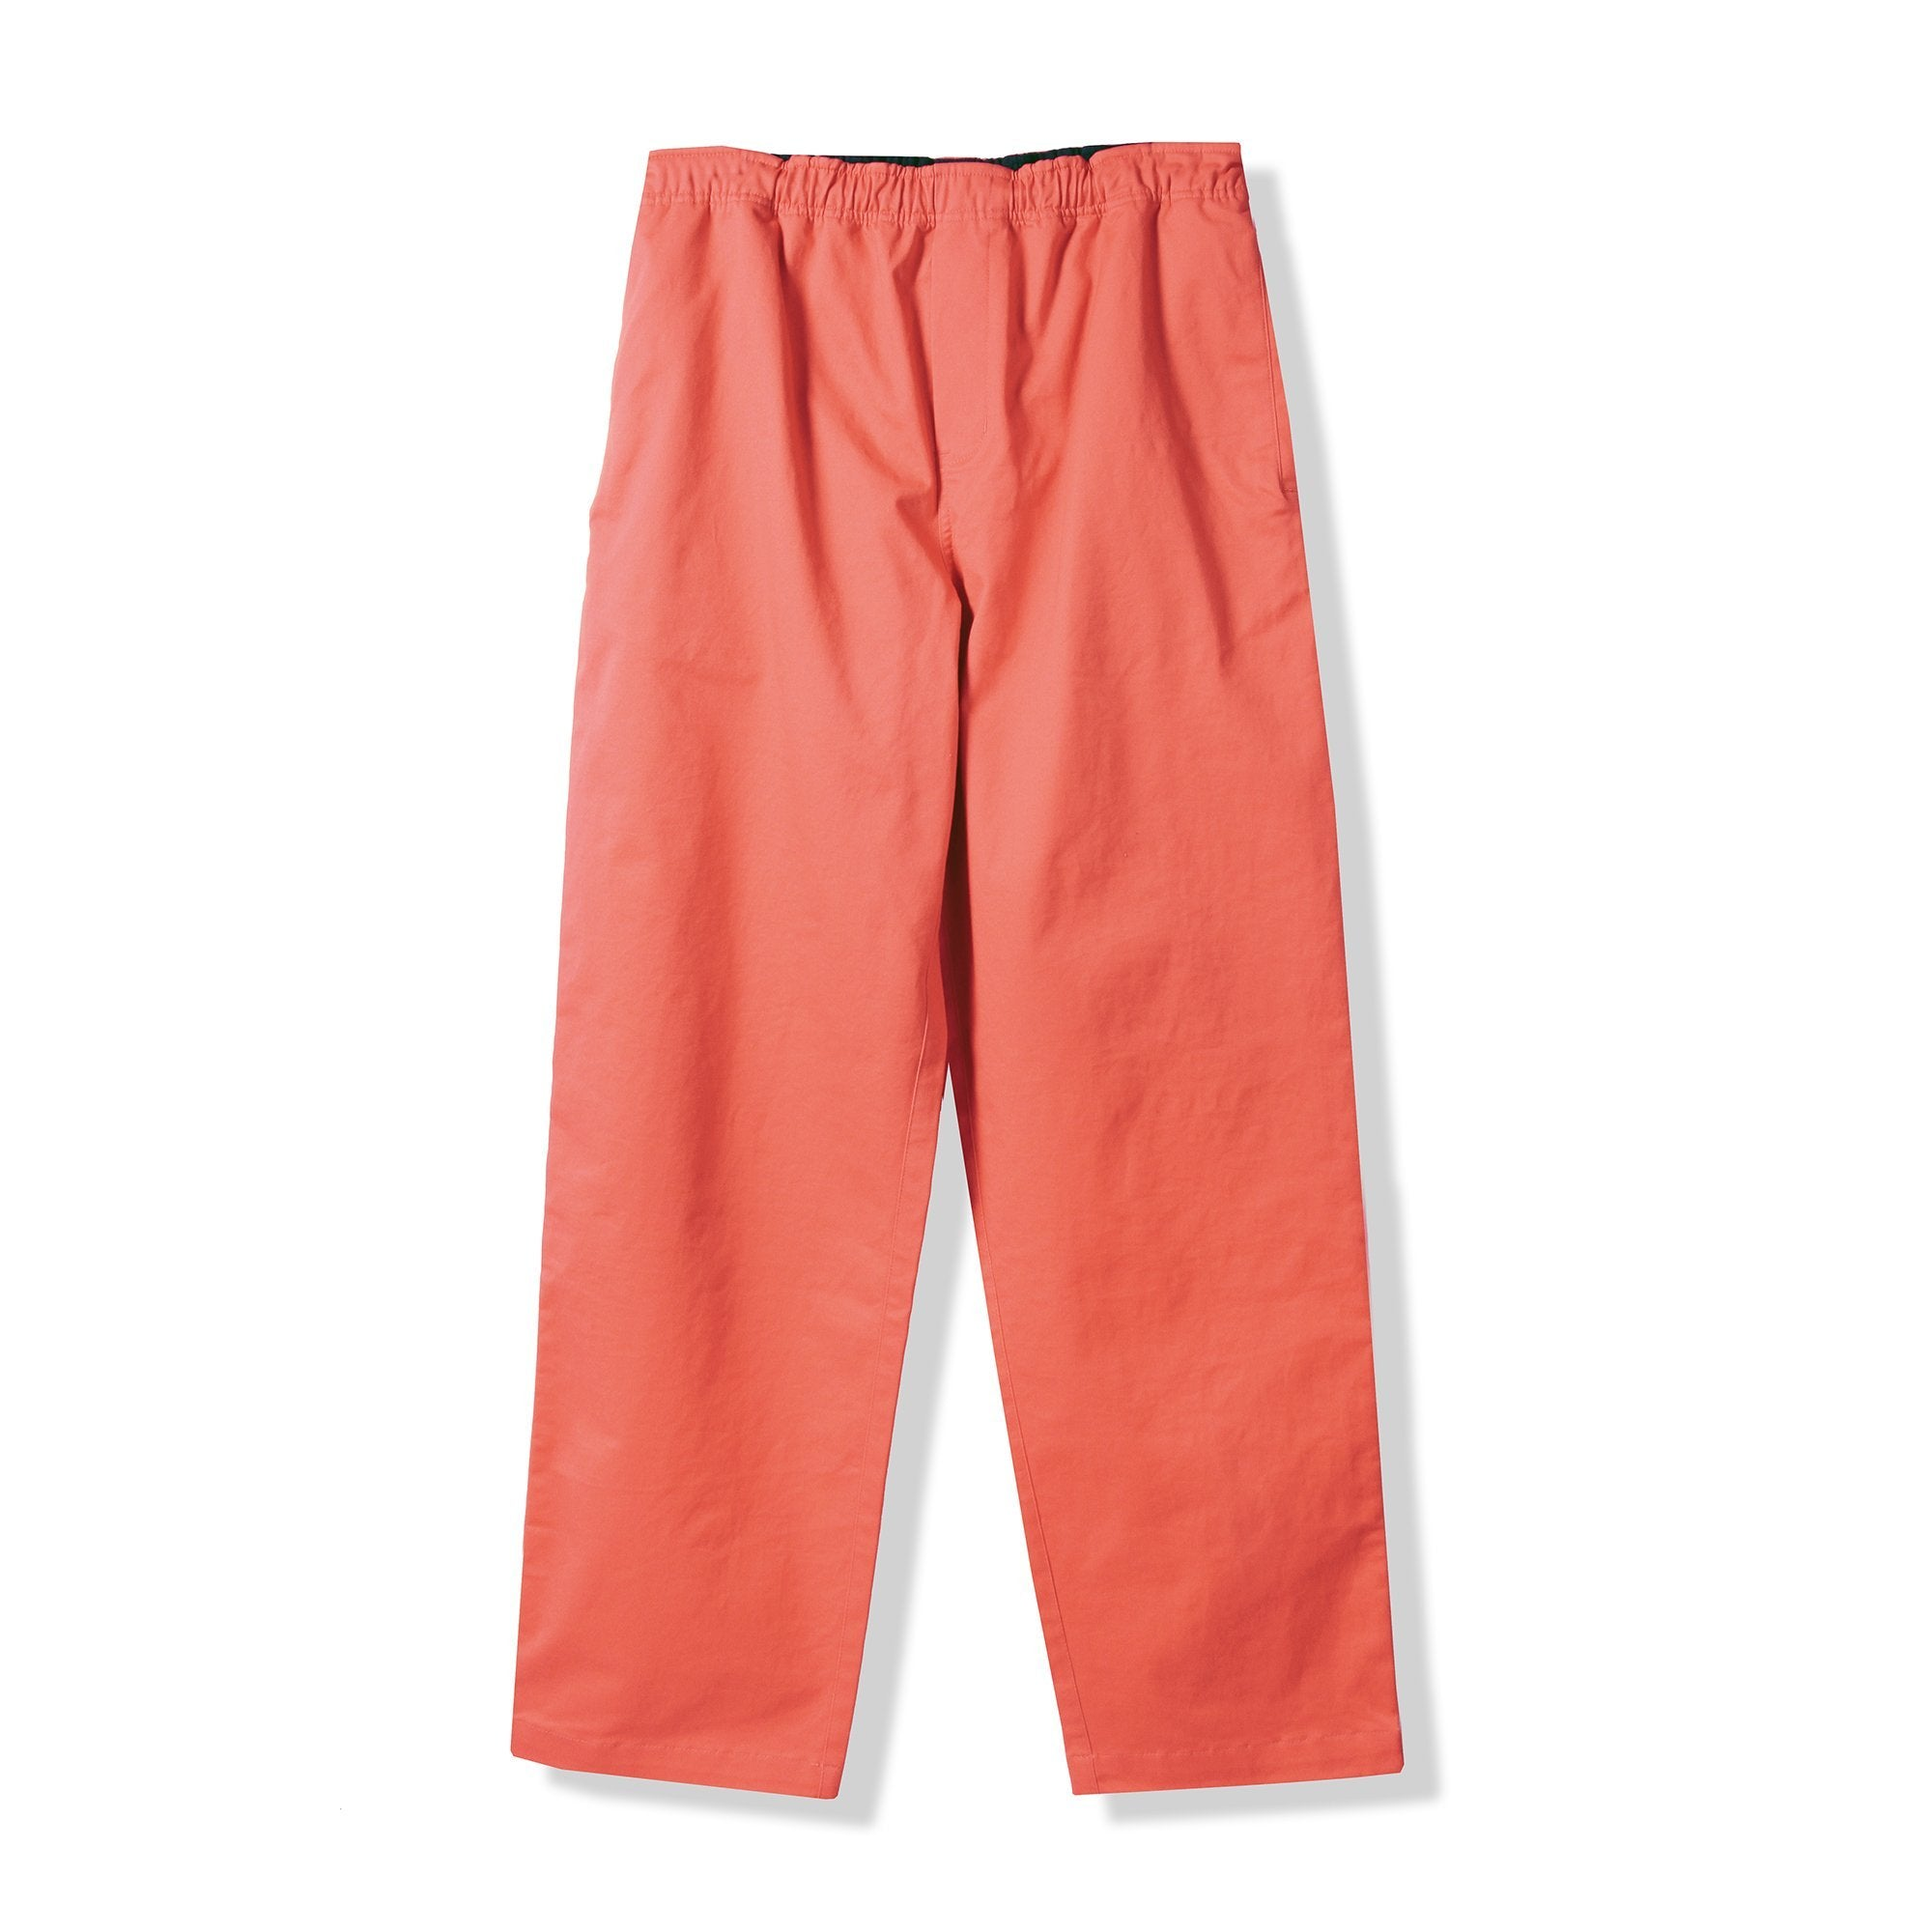 BUTTER GOODS CASUAL PANTS